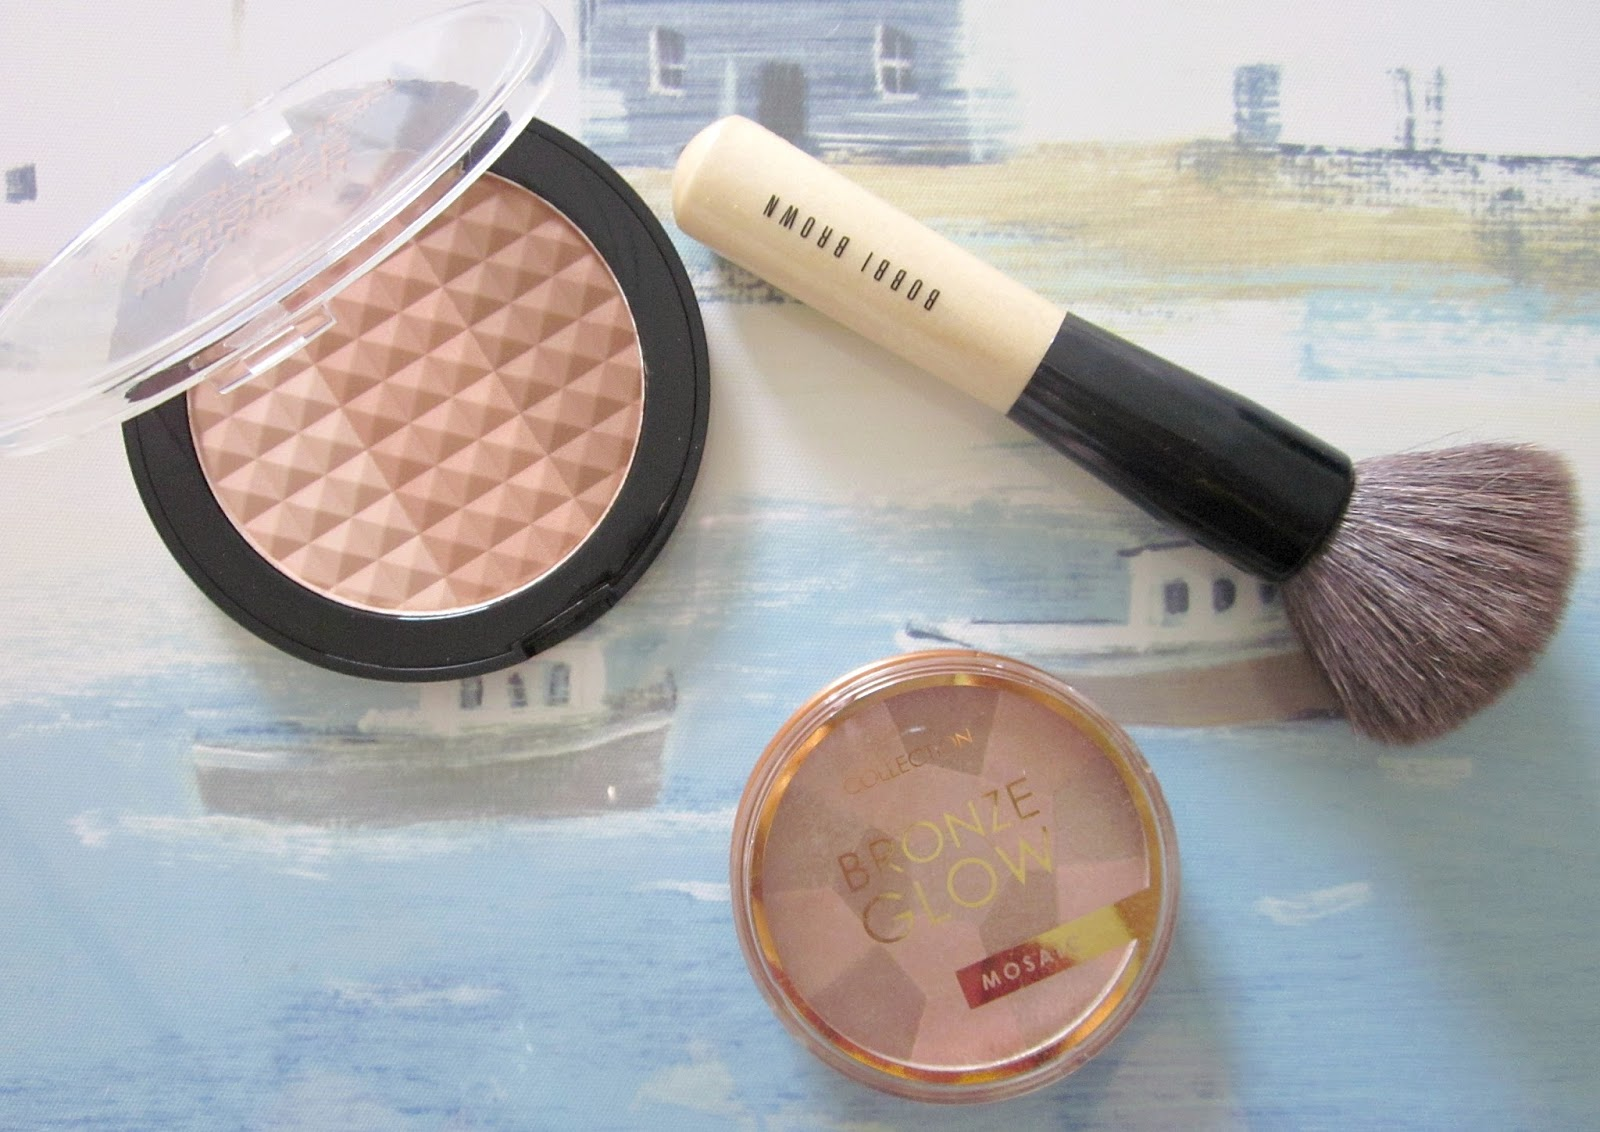 Make Up Revolution bronzer and Collection mosaic bronzer